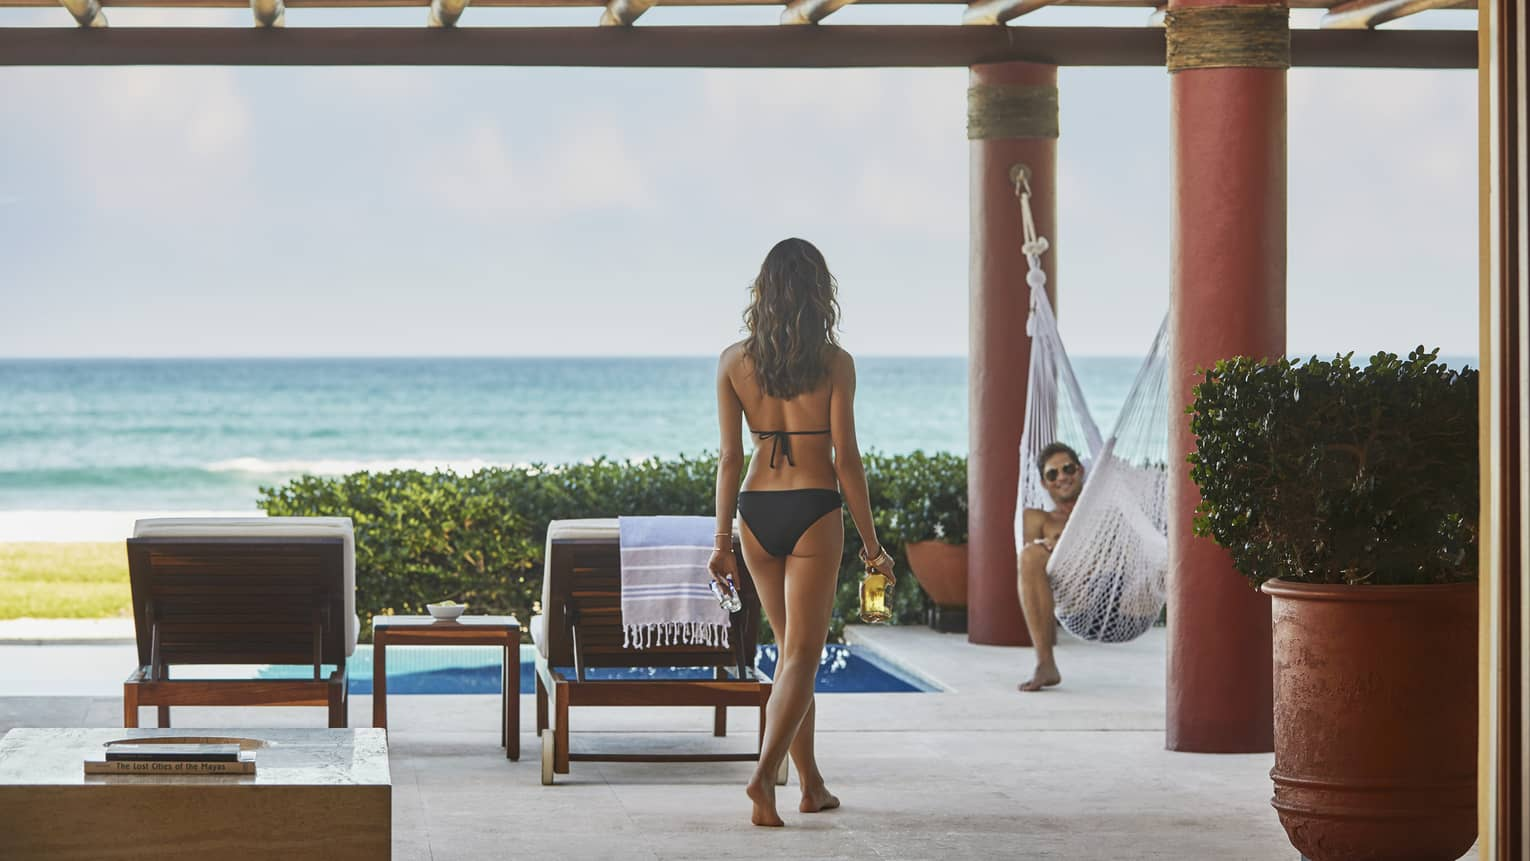 Back of woman in bikini walking along patio to man lounging in hammock